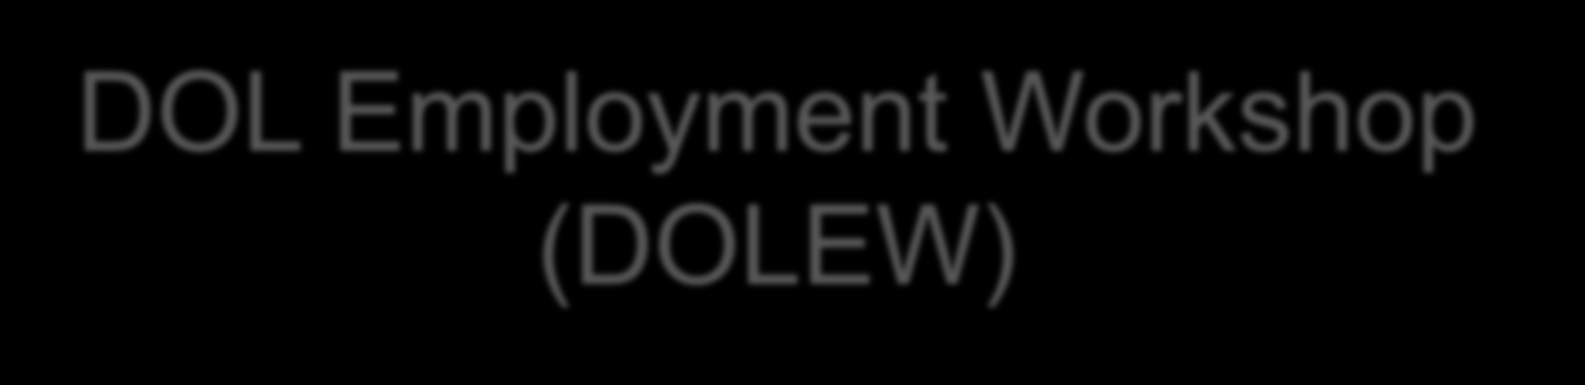 DOL Employment Workshop (DOLEW) DOLEW- 3 day portion of the workshop that is facilitated by